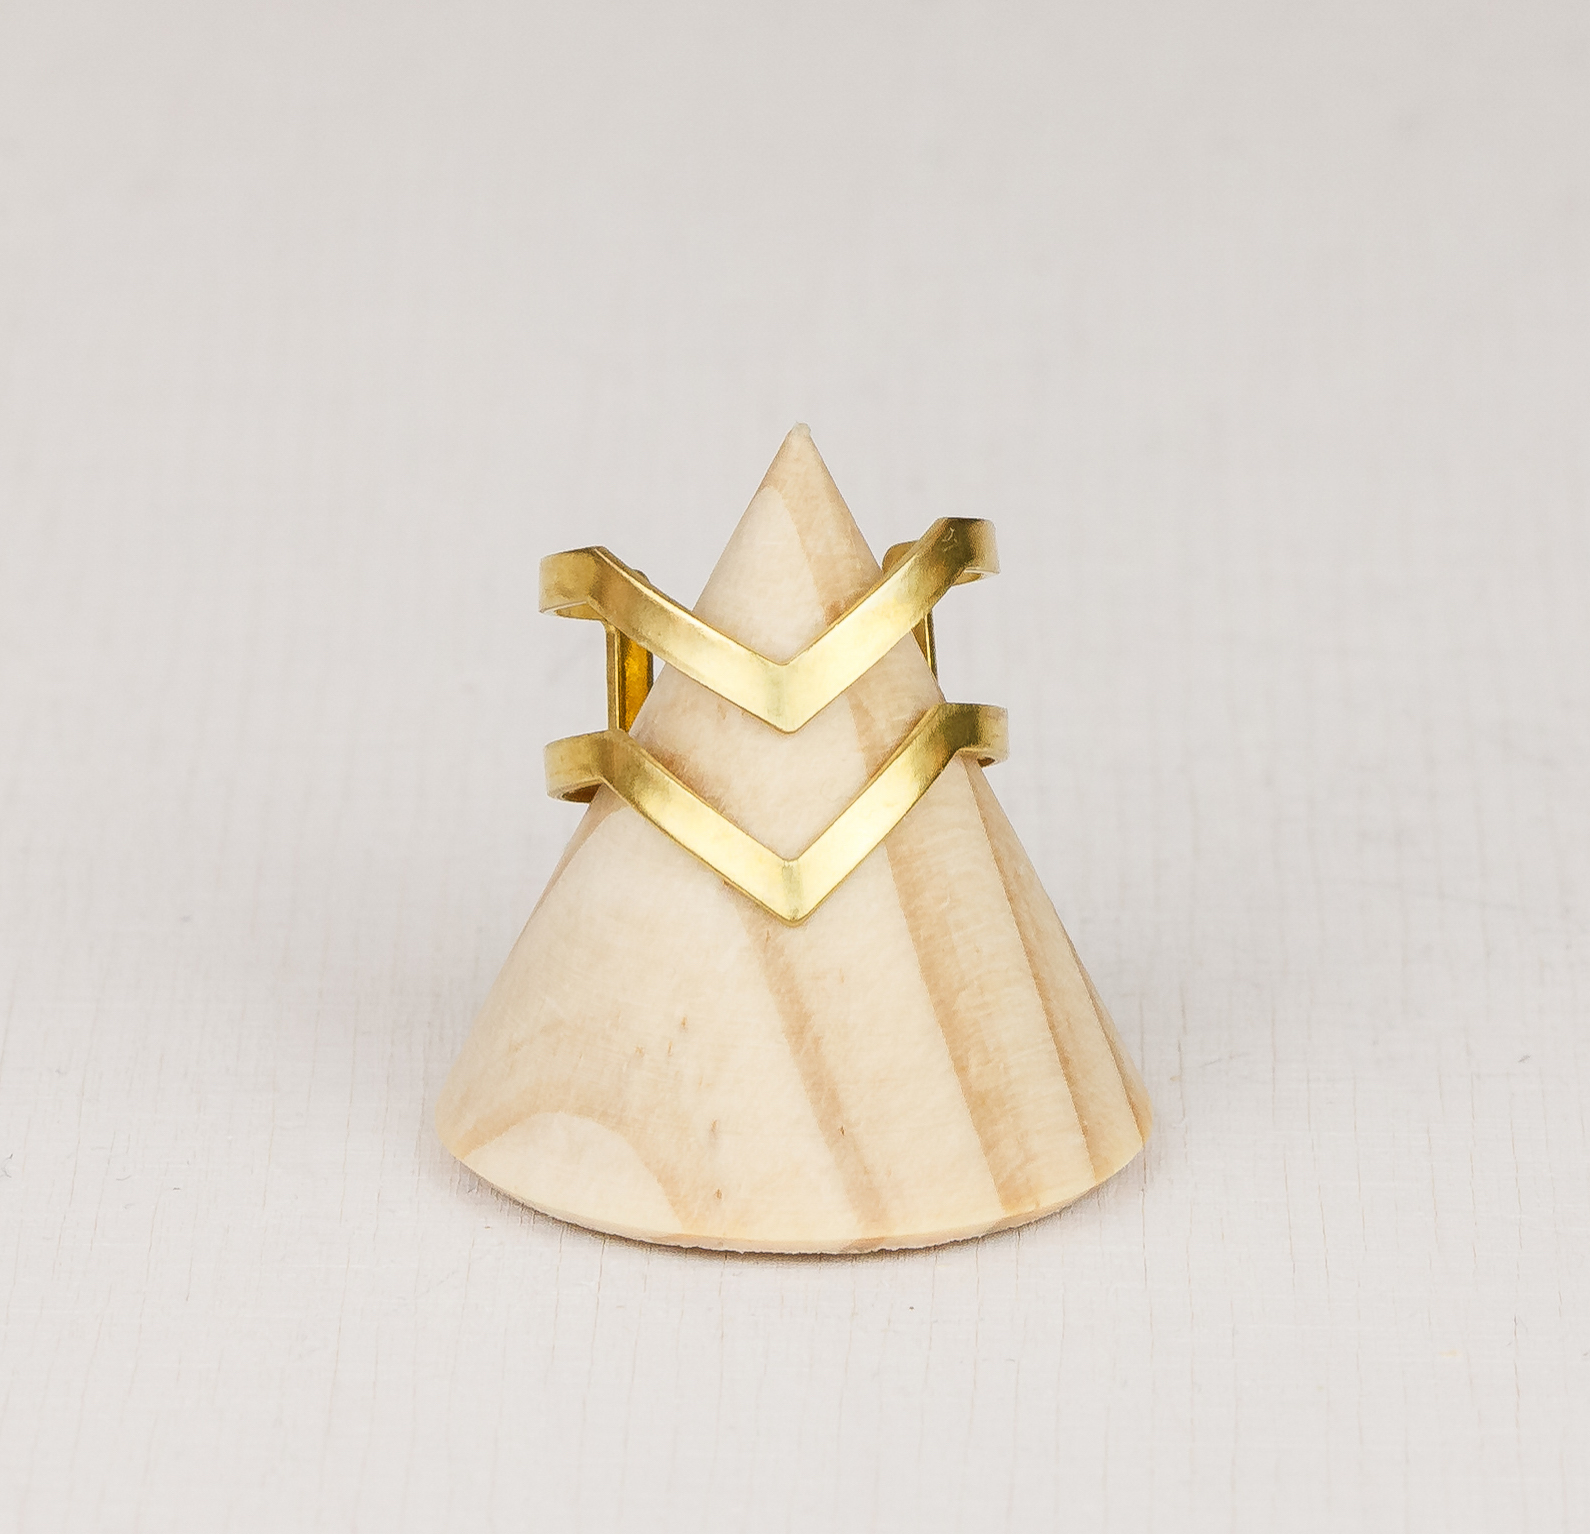 Chevron Adjustable Brass Ring by State of A